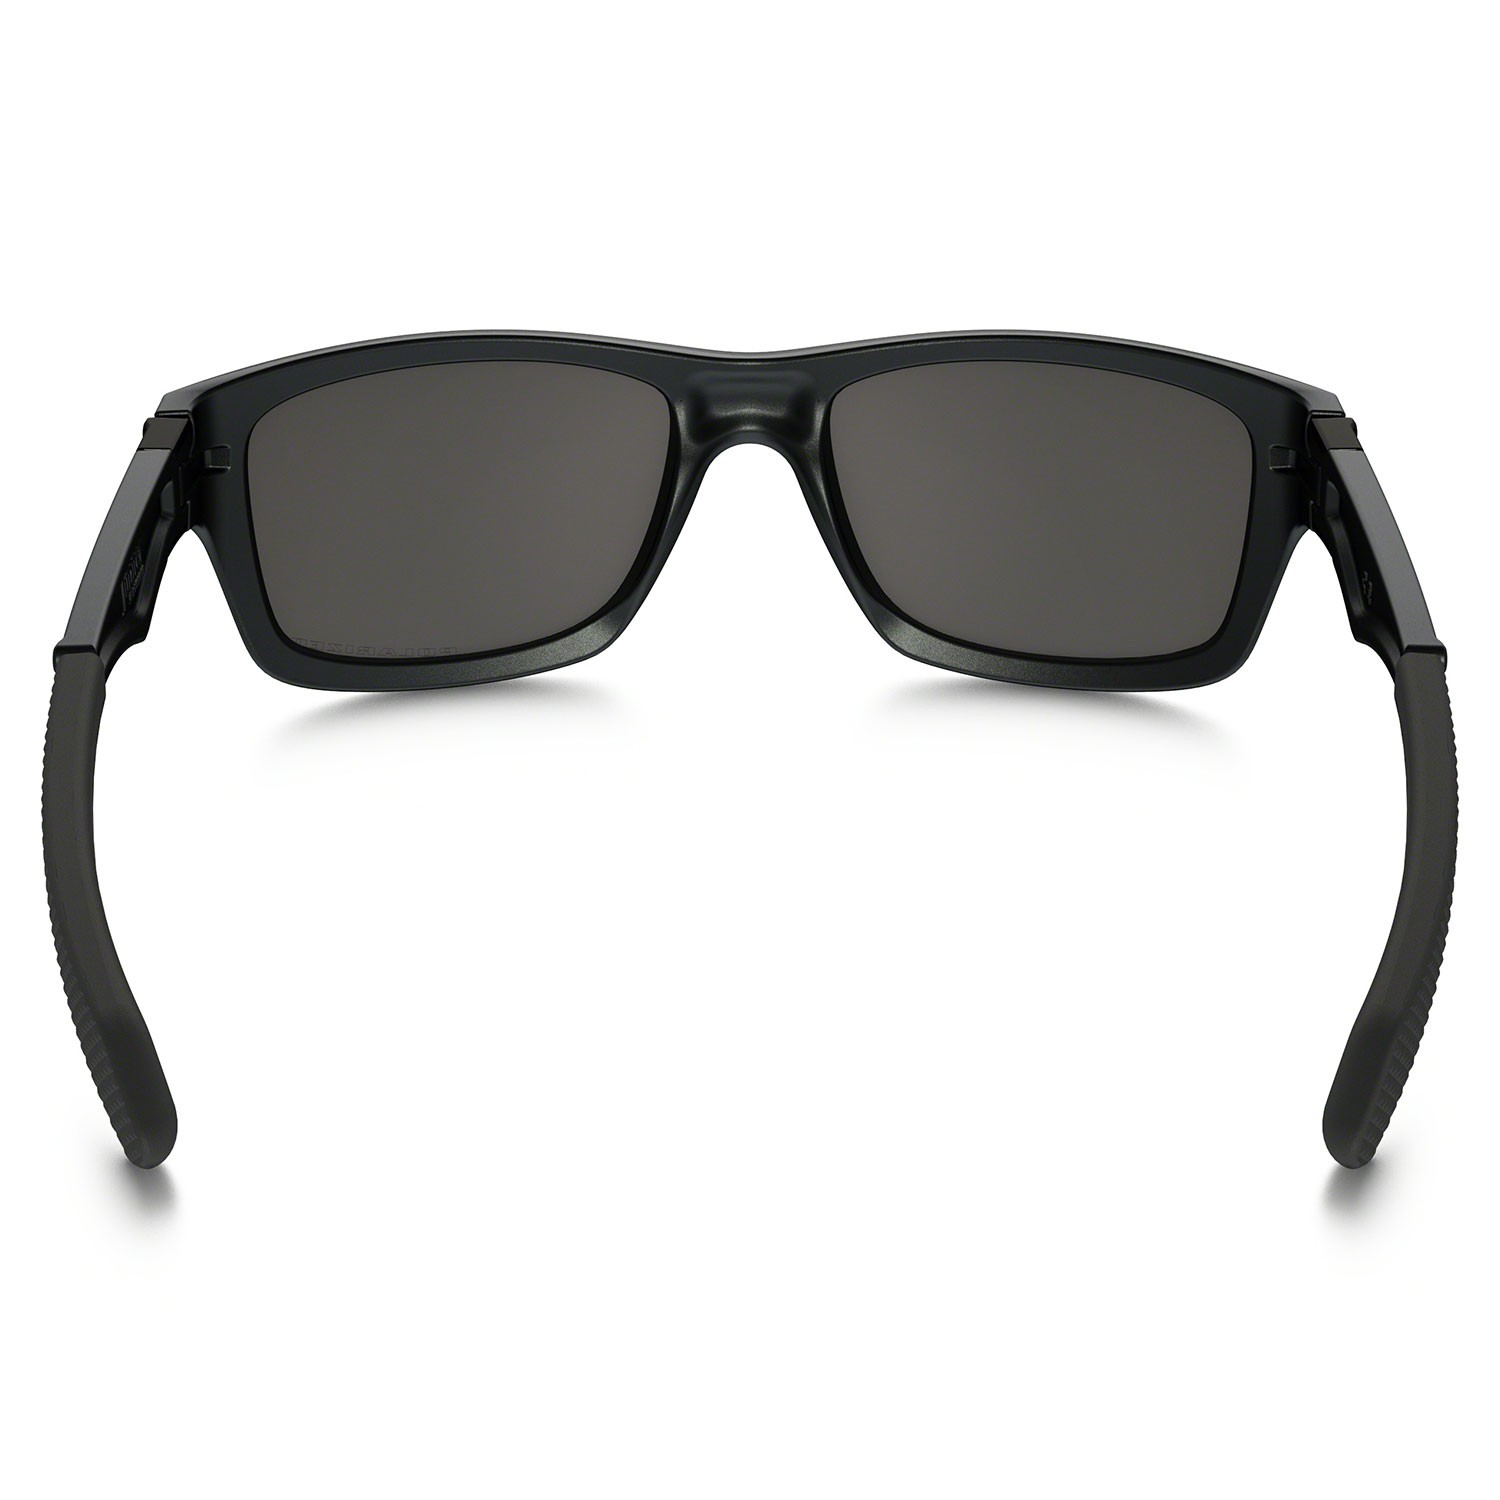 Sunglasses Oakley Jupiter Squared matte black  798be93ed